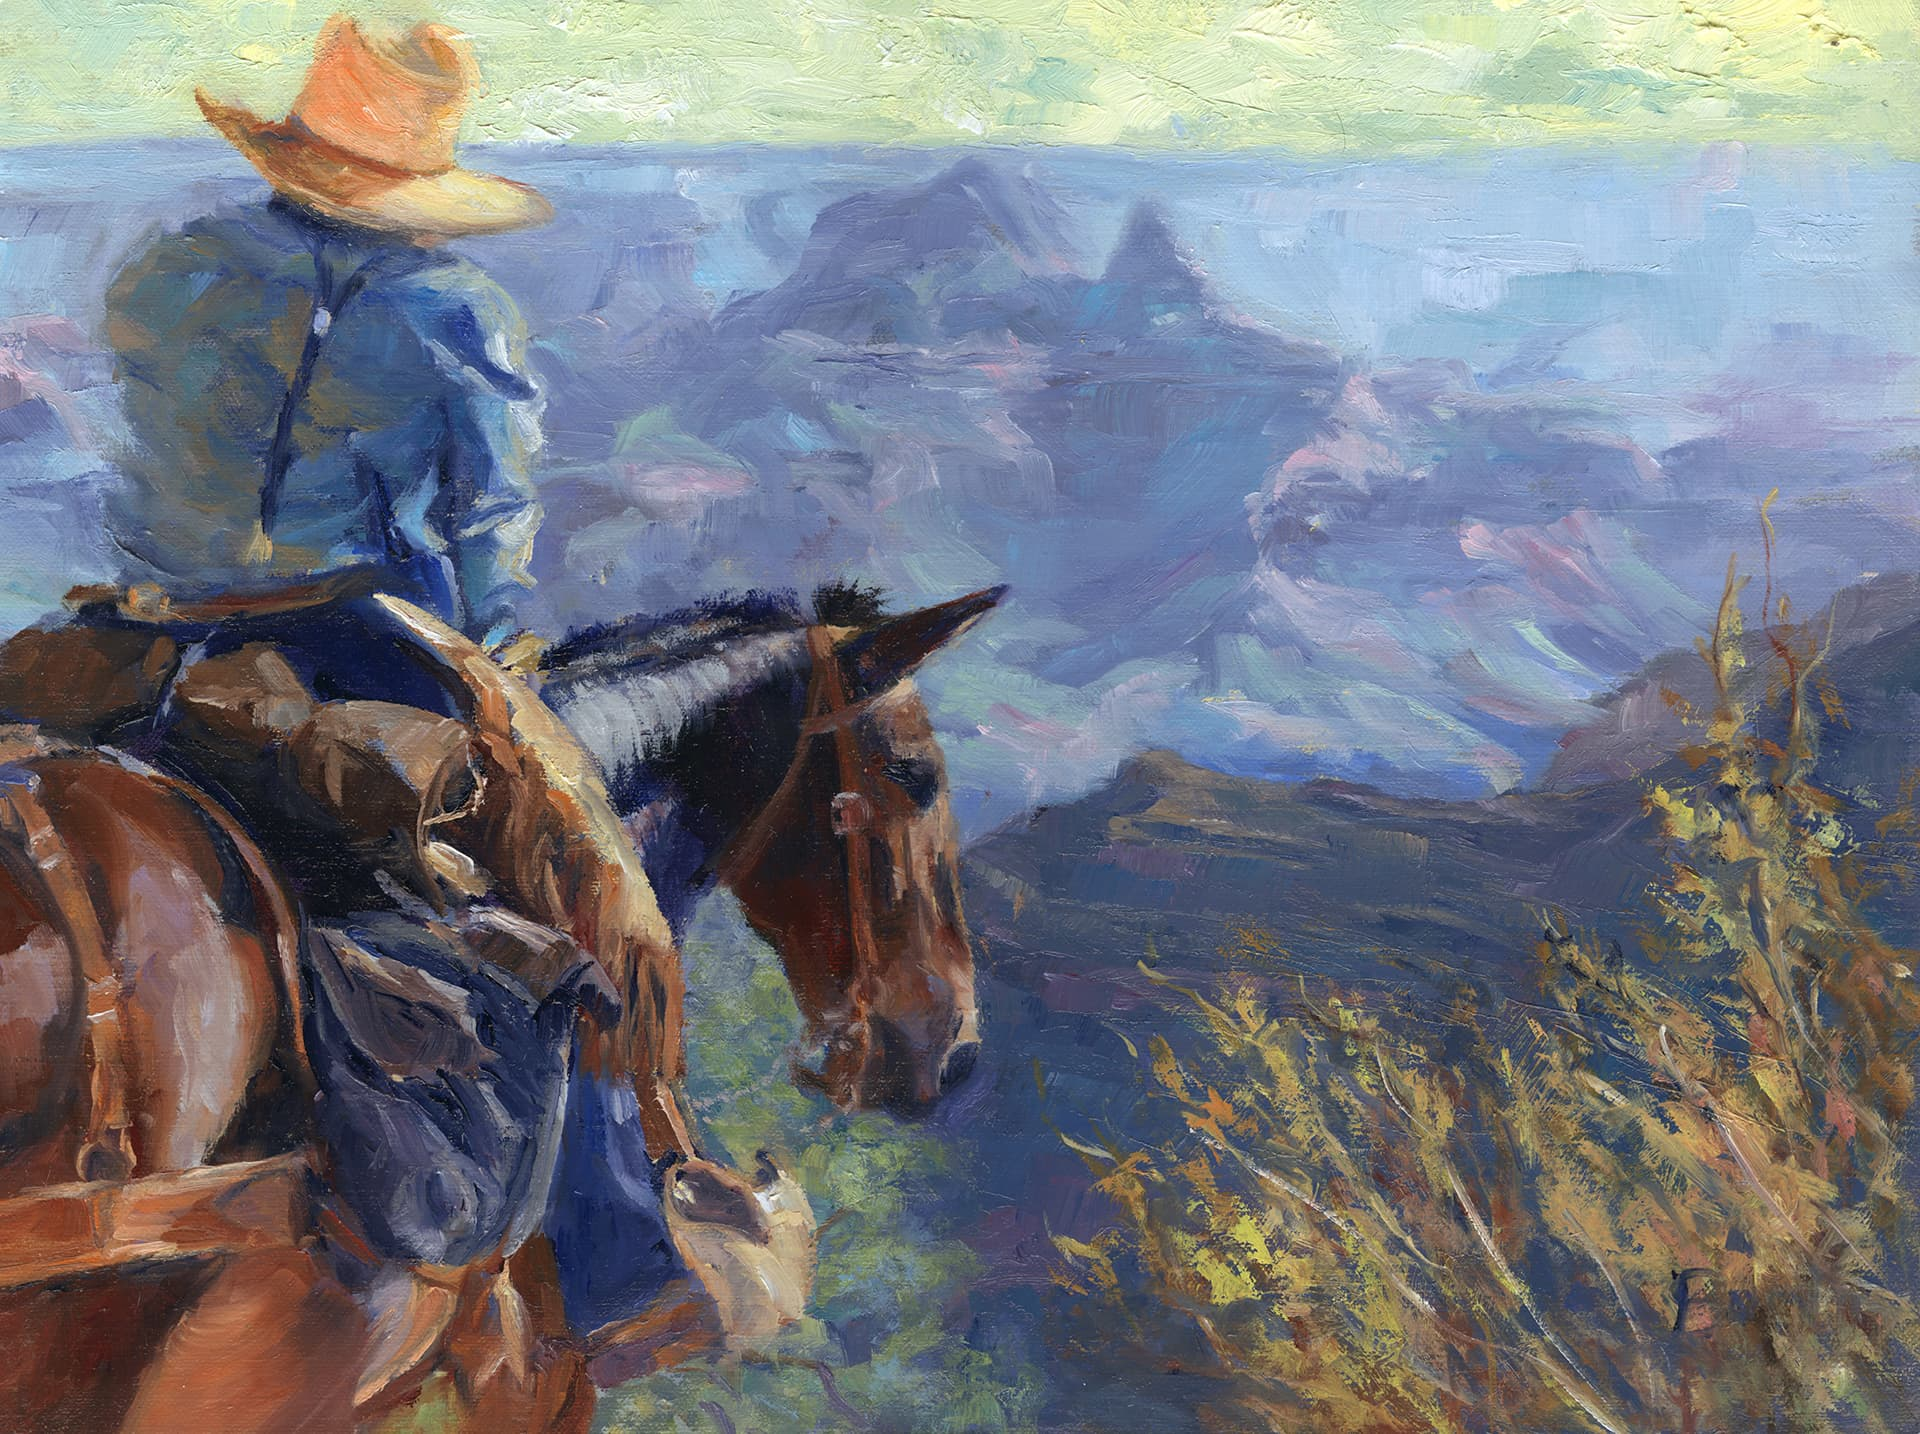 Maggie and Jack on the Way to Work by Mary Lois Brown.